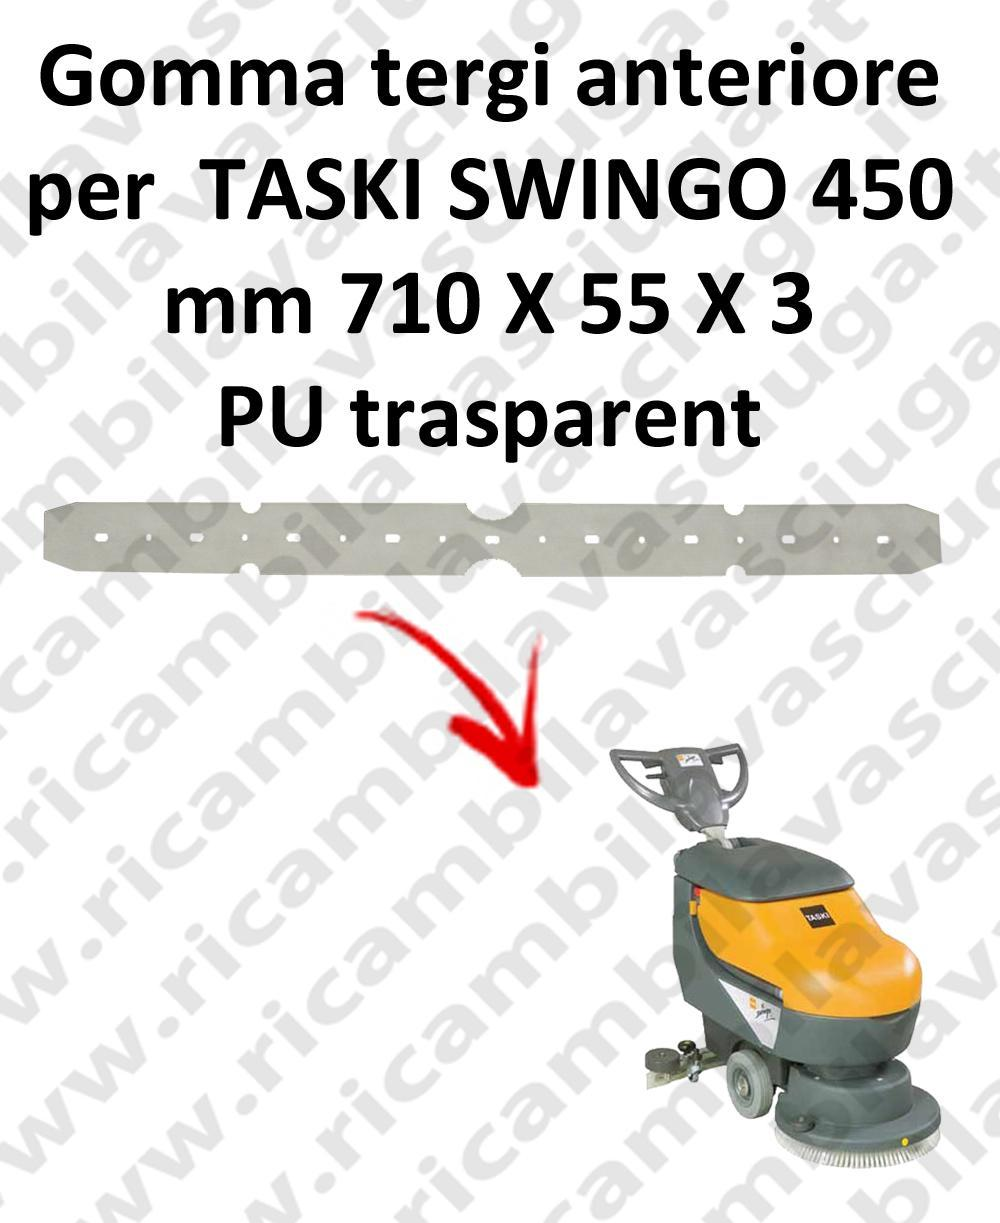 SWINGO 450  Front Squeegee rubber for TASKI accessories, reaplacement, spare parts,o scrubber dryer squeegee